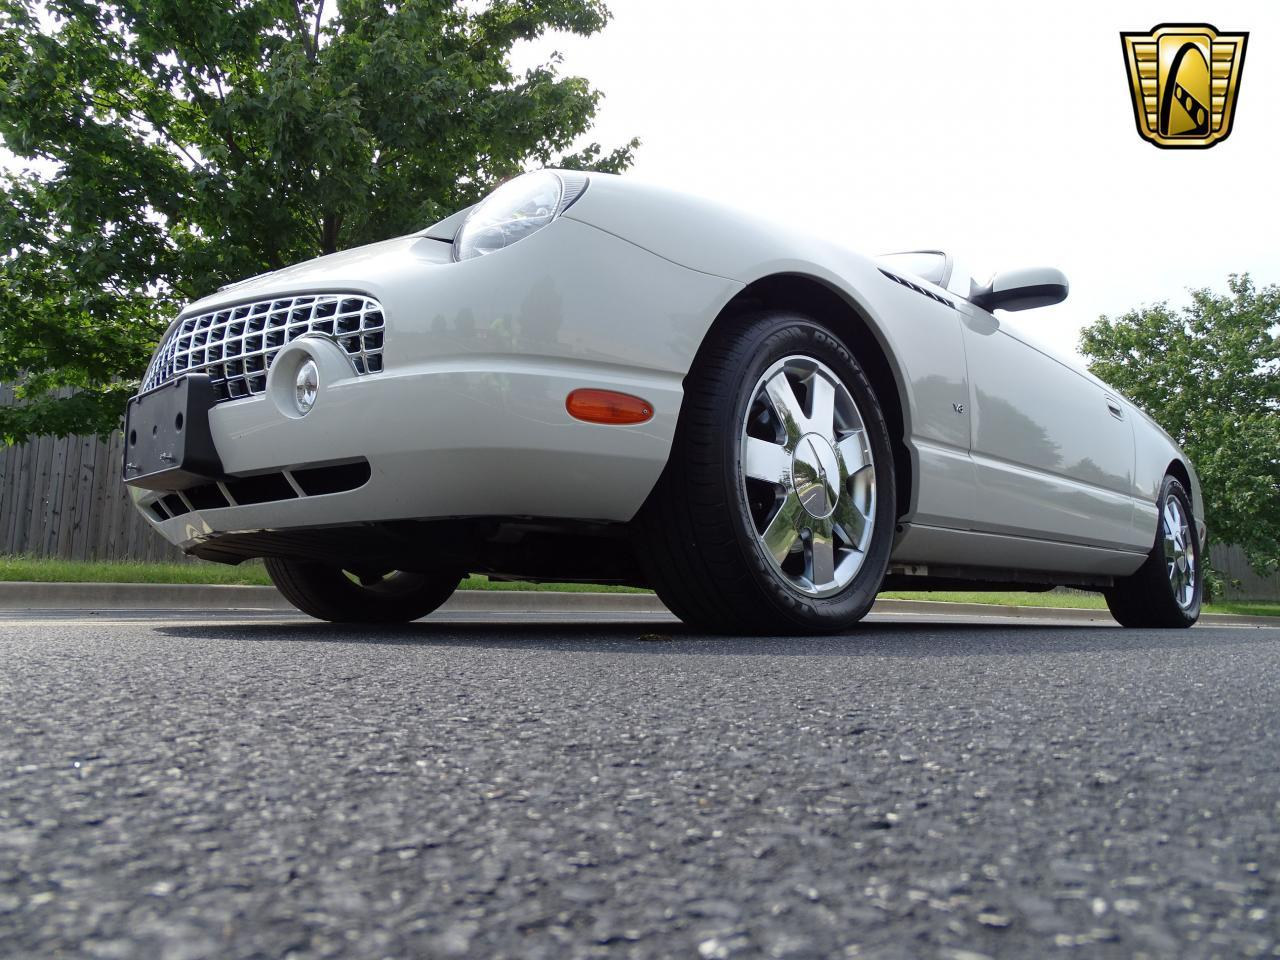 Large Picture of 2003 Ford Thunderbird - $13,500.00 Offered by Gateway Classic Cars - St. Louis - QB5Q